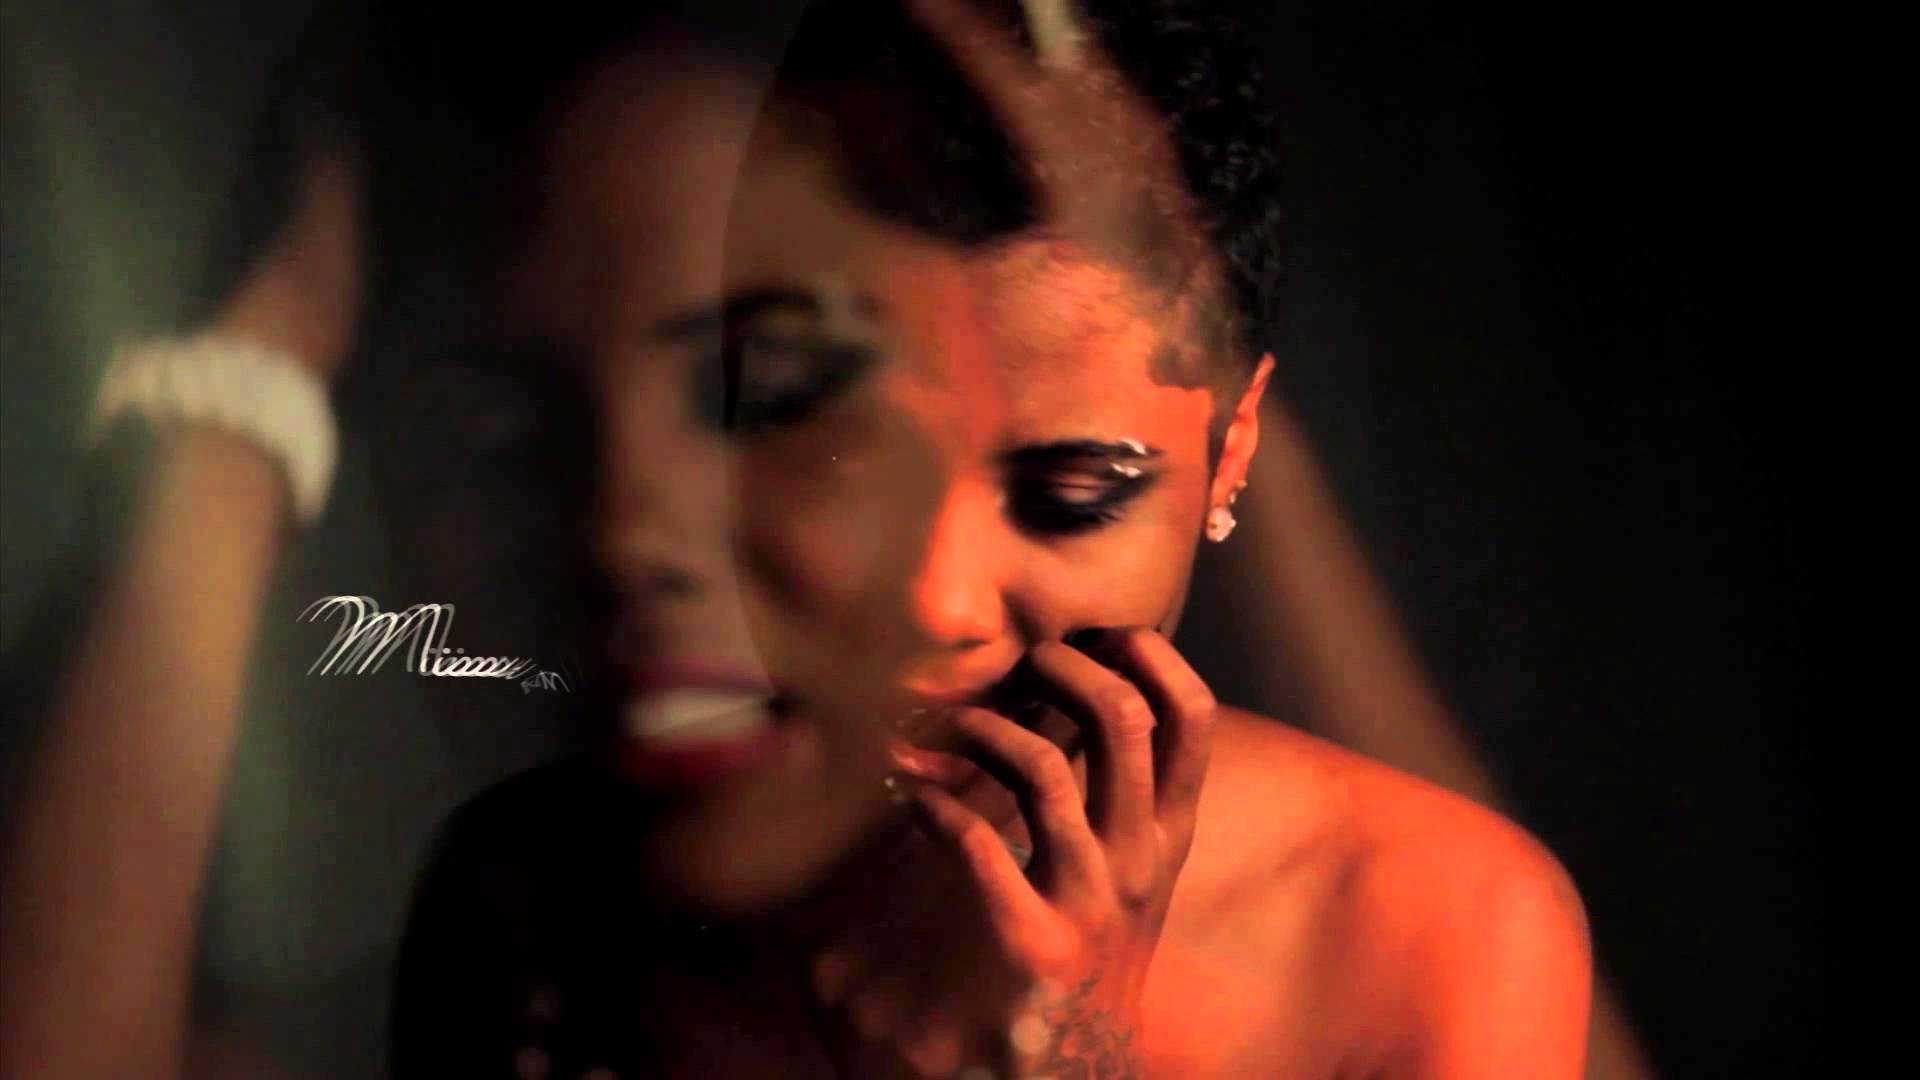 Video: Denyque - I Miss You 11/13/2012